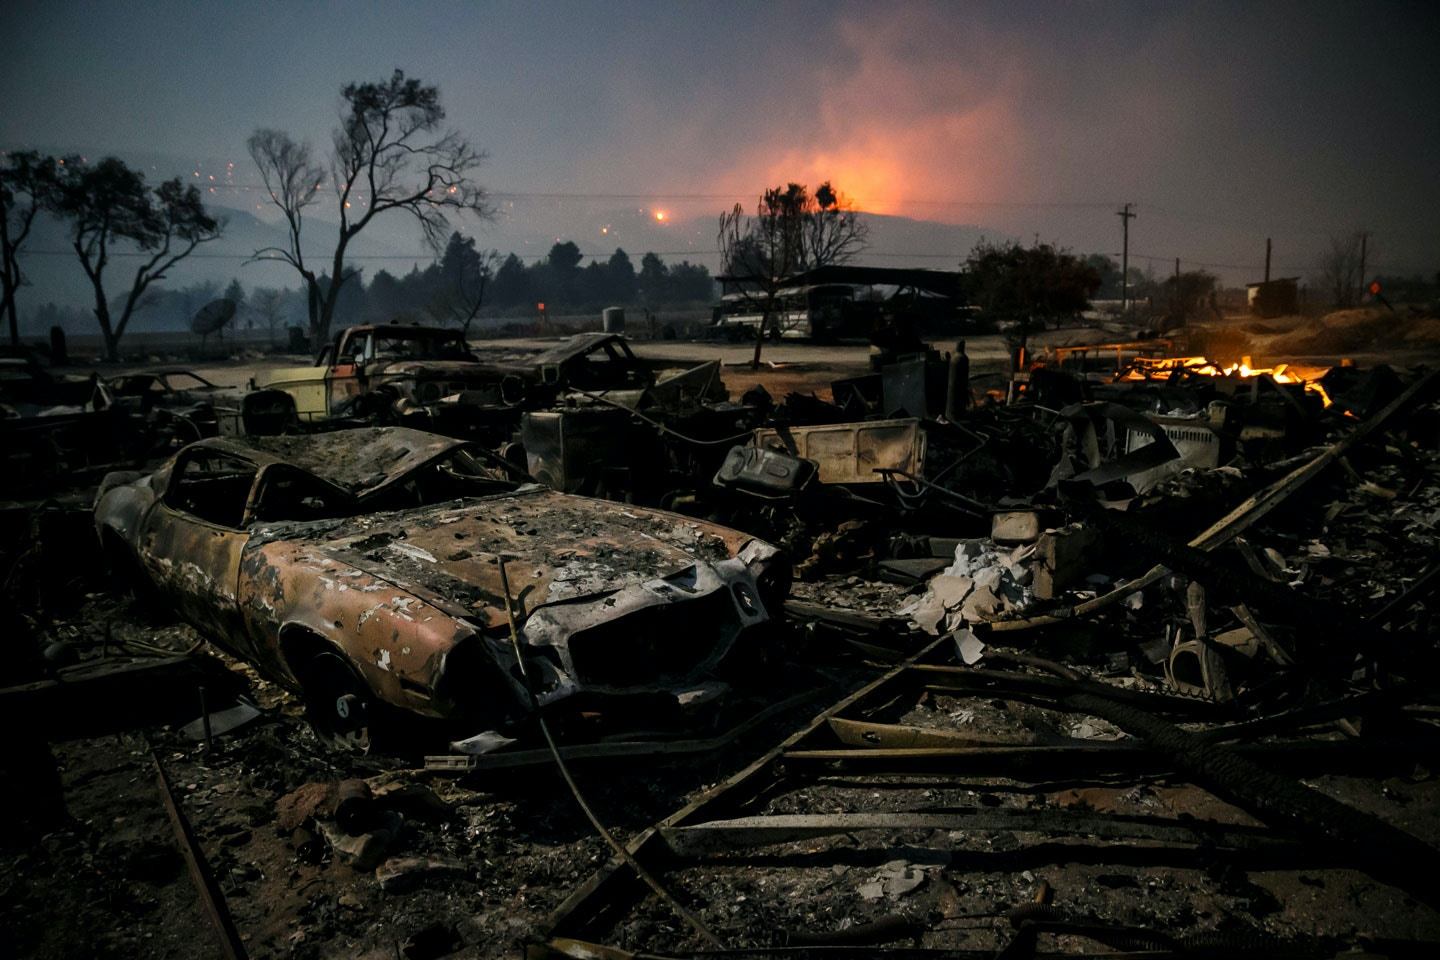 SAN BERNARDINO, CA - AUGUST 18: Burned vehicles sit in the glow of the full moon on Highway 138 in Phelan as the Blue Cut fire continues to ravage San Bernardino County, Calif., on Aug. 18, 2016. (Photo by Marcus Yam/Los Angeles Times via Getty Images)